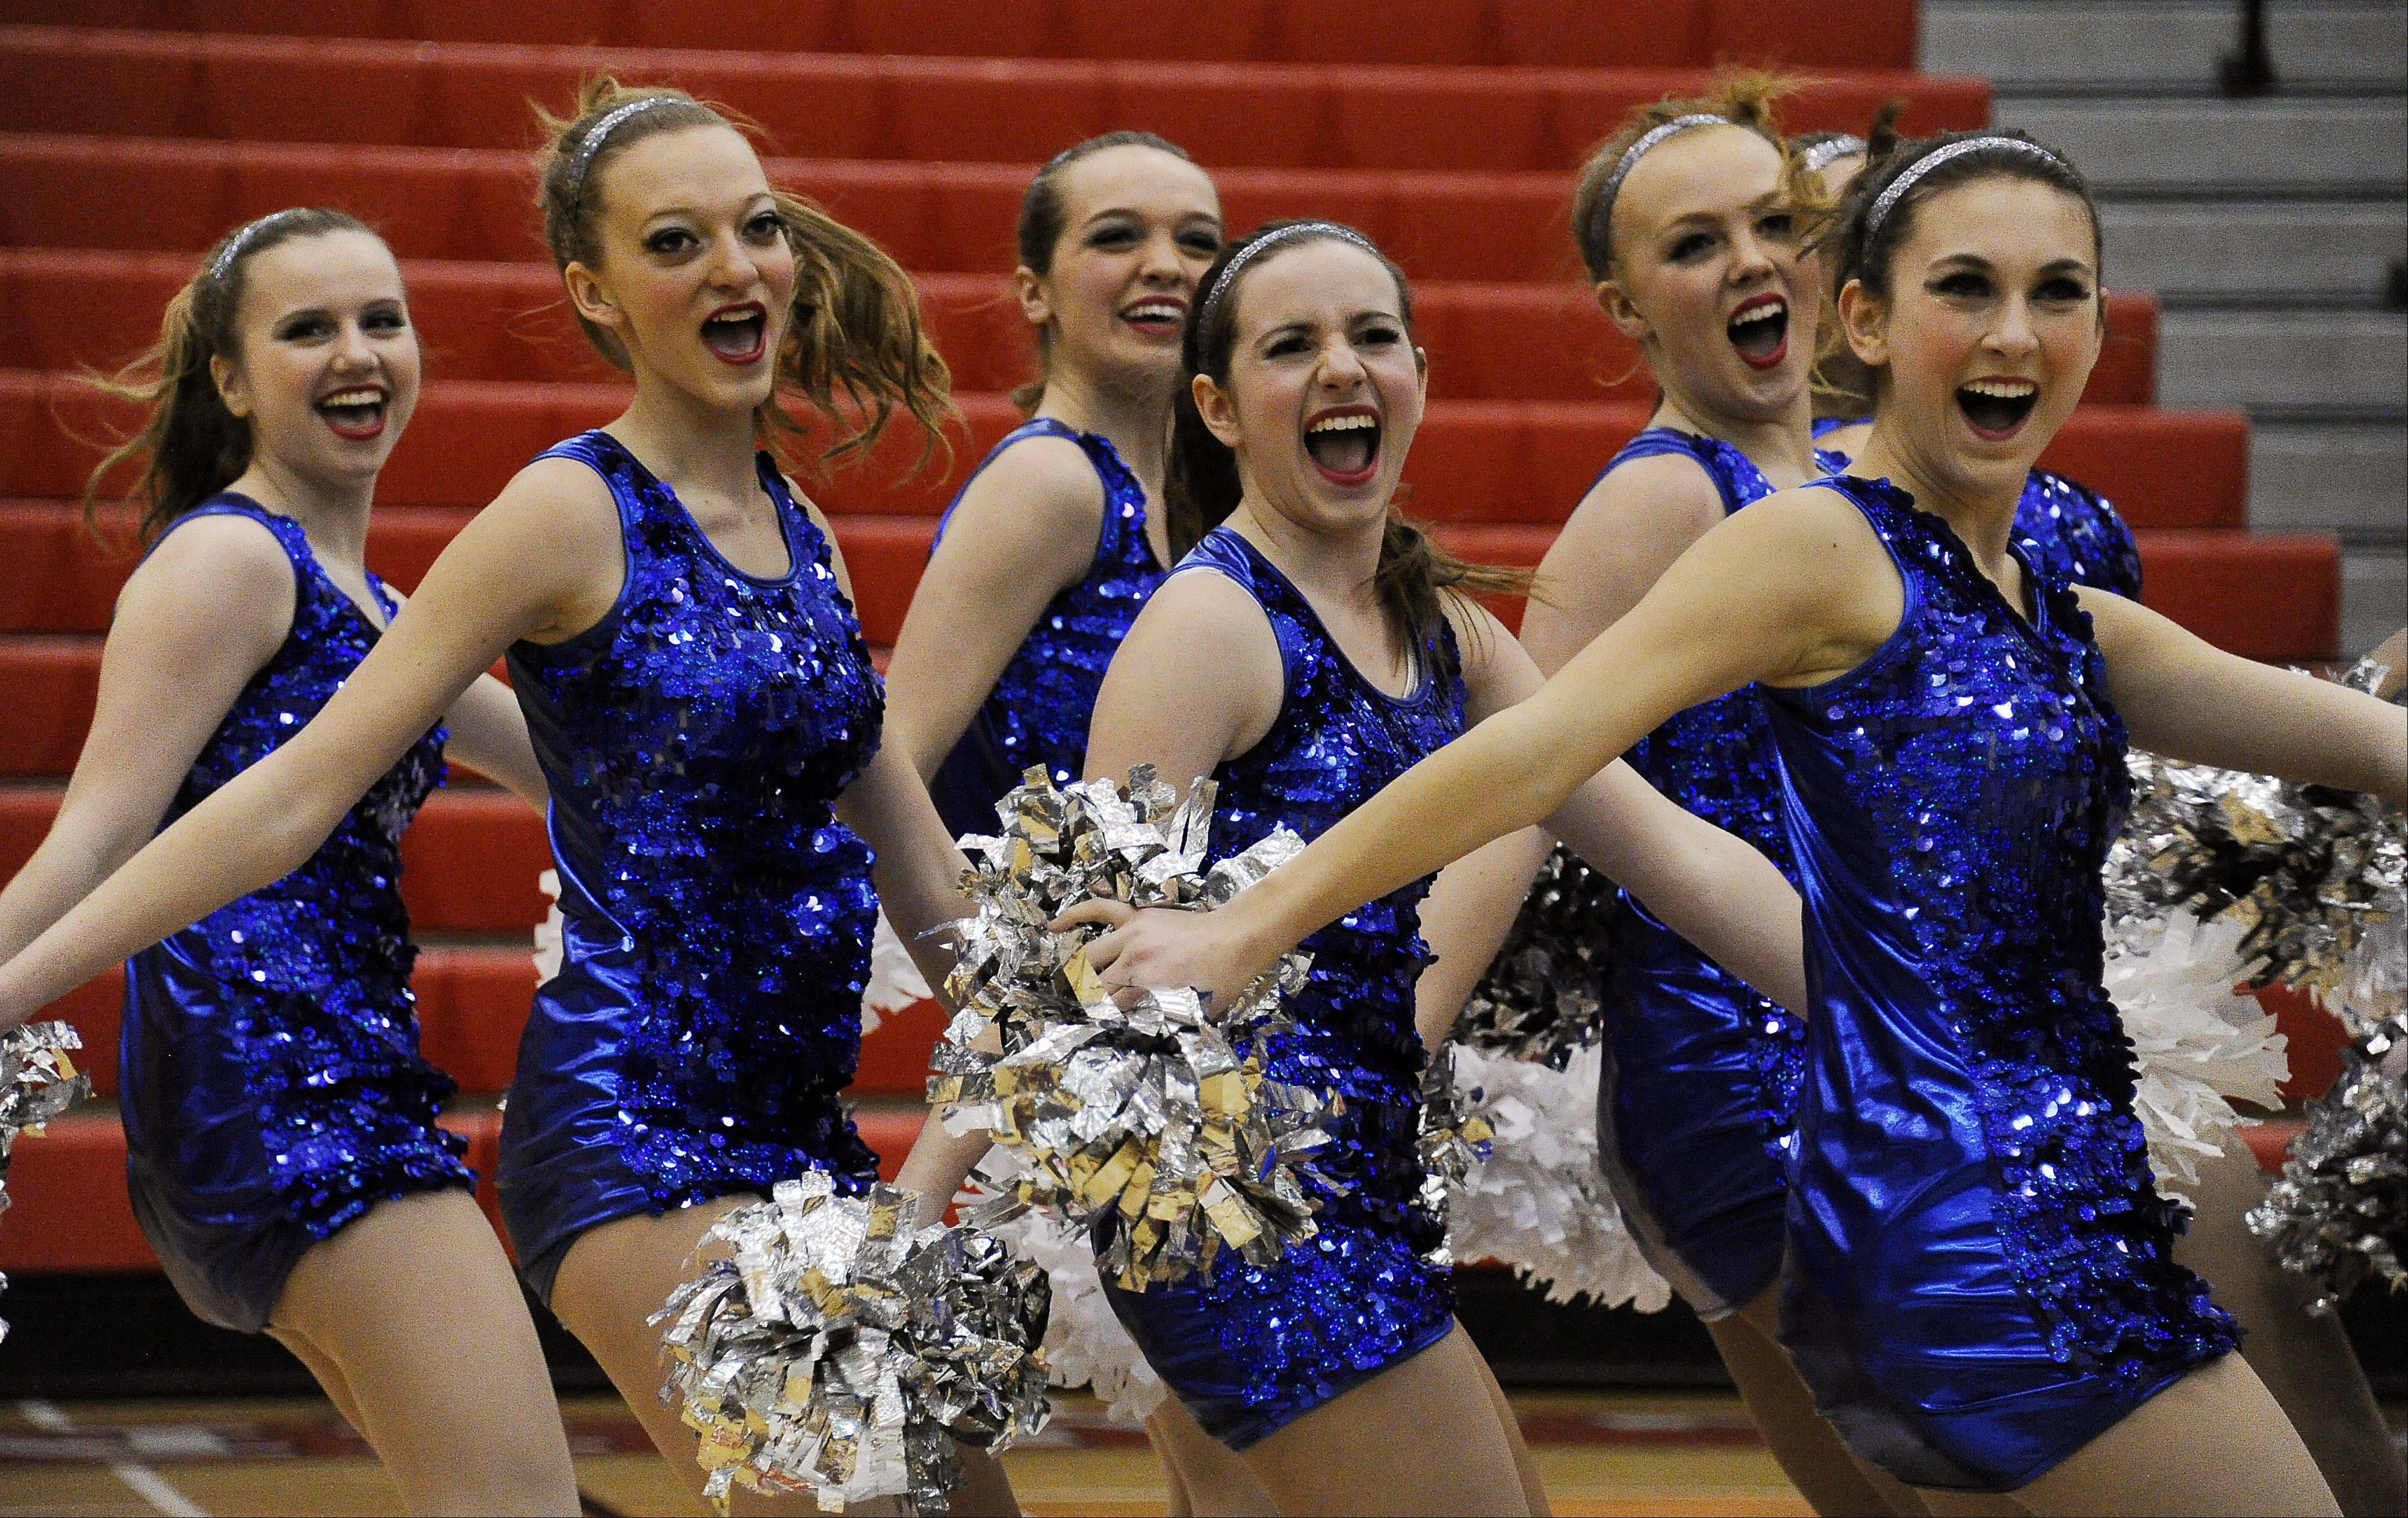 Dancing in the (2A) division are members of the Glenbard South High School dance squad with Hannah Ohlmann (center) leading the way in the 1st annual Sectional Competition at Palatine High School on Saturday.